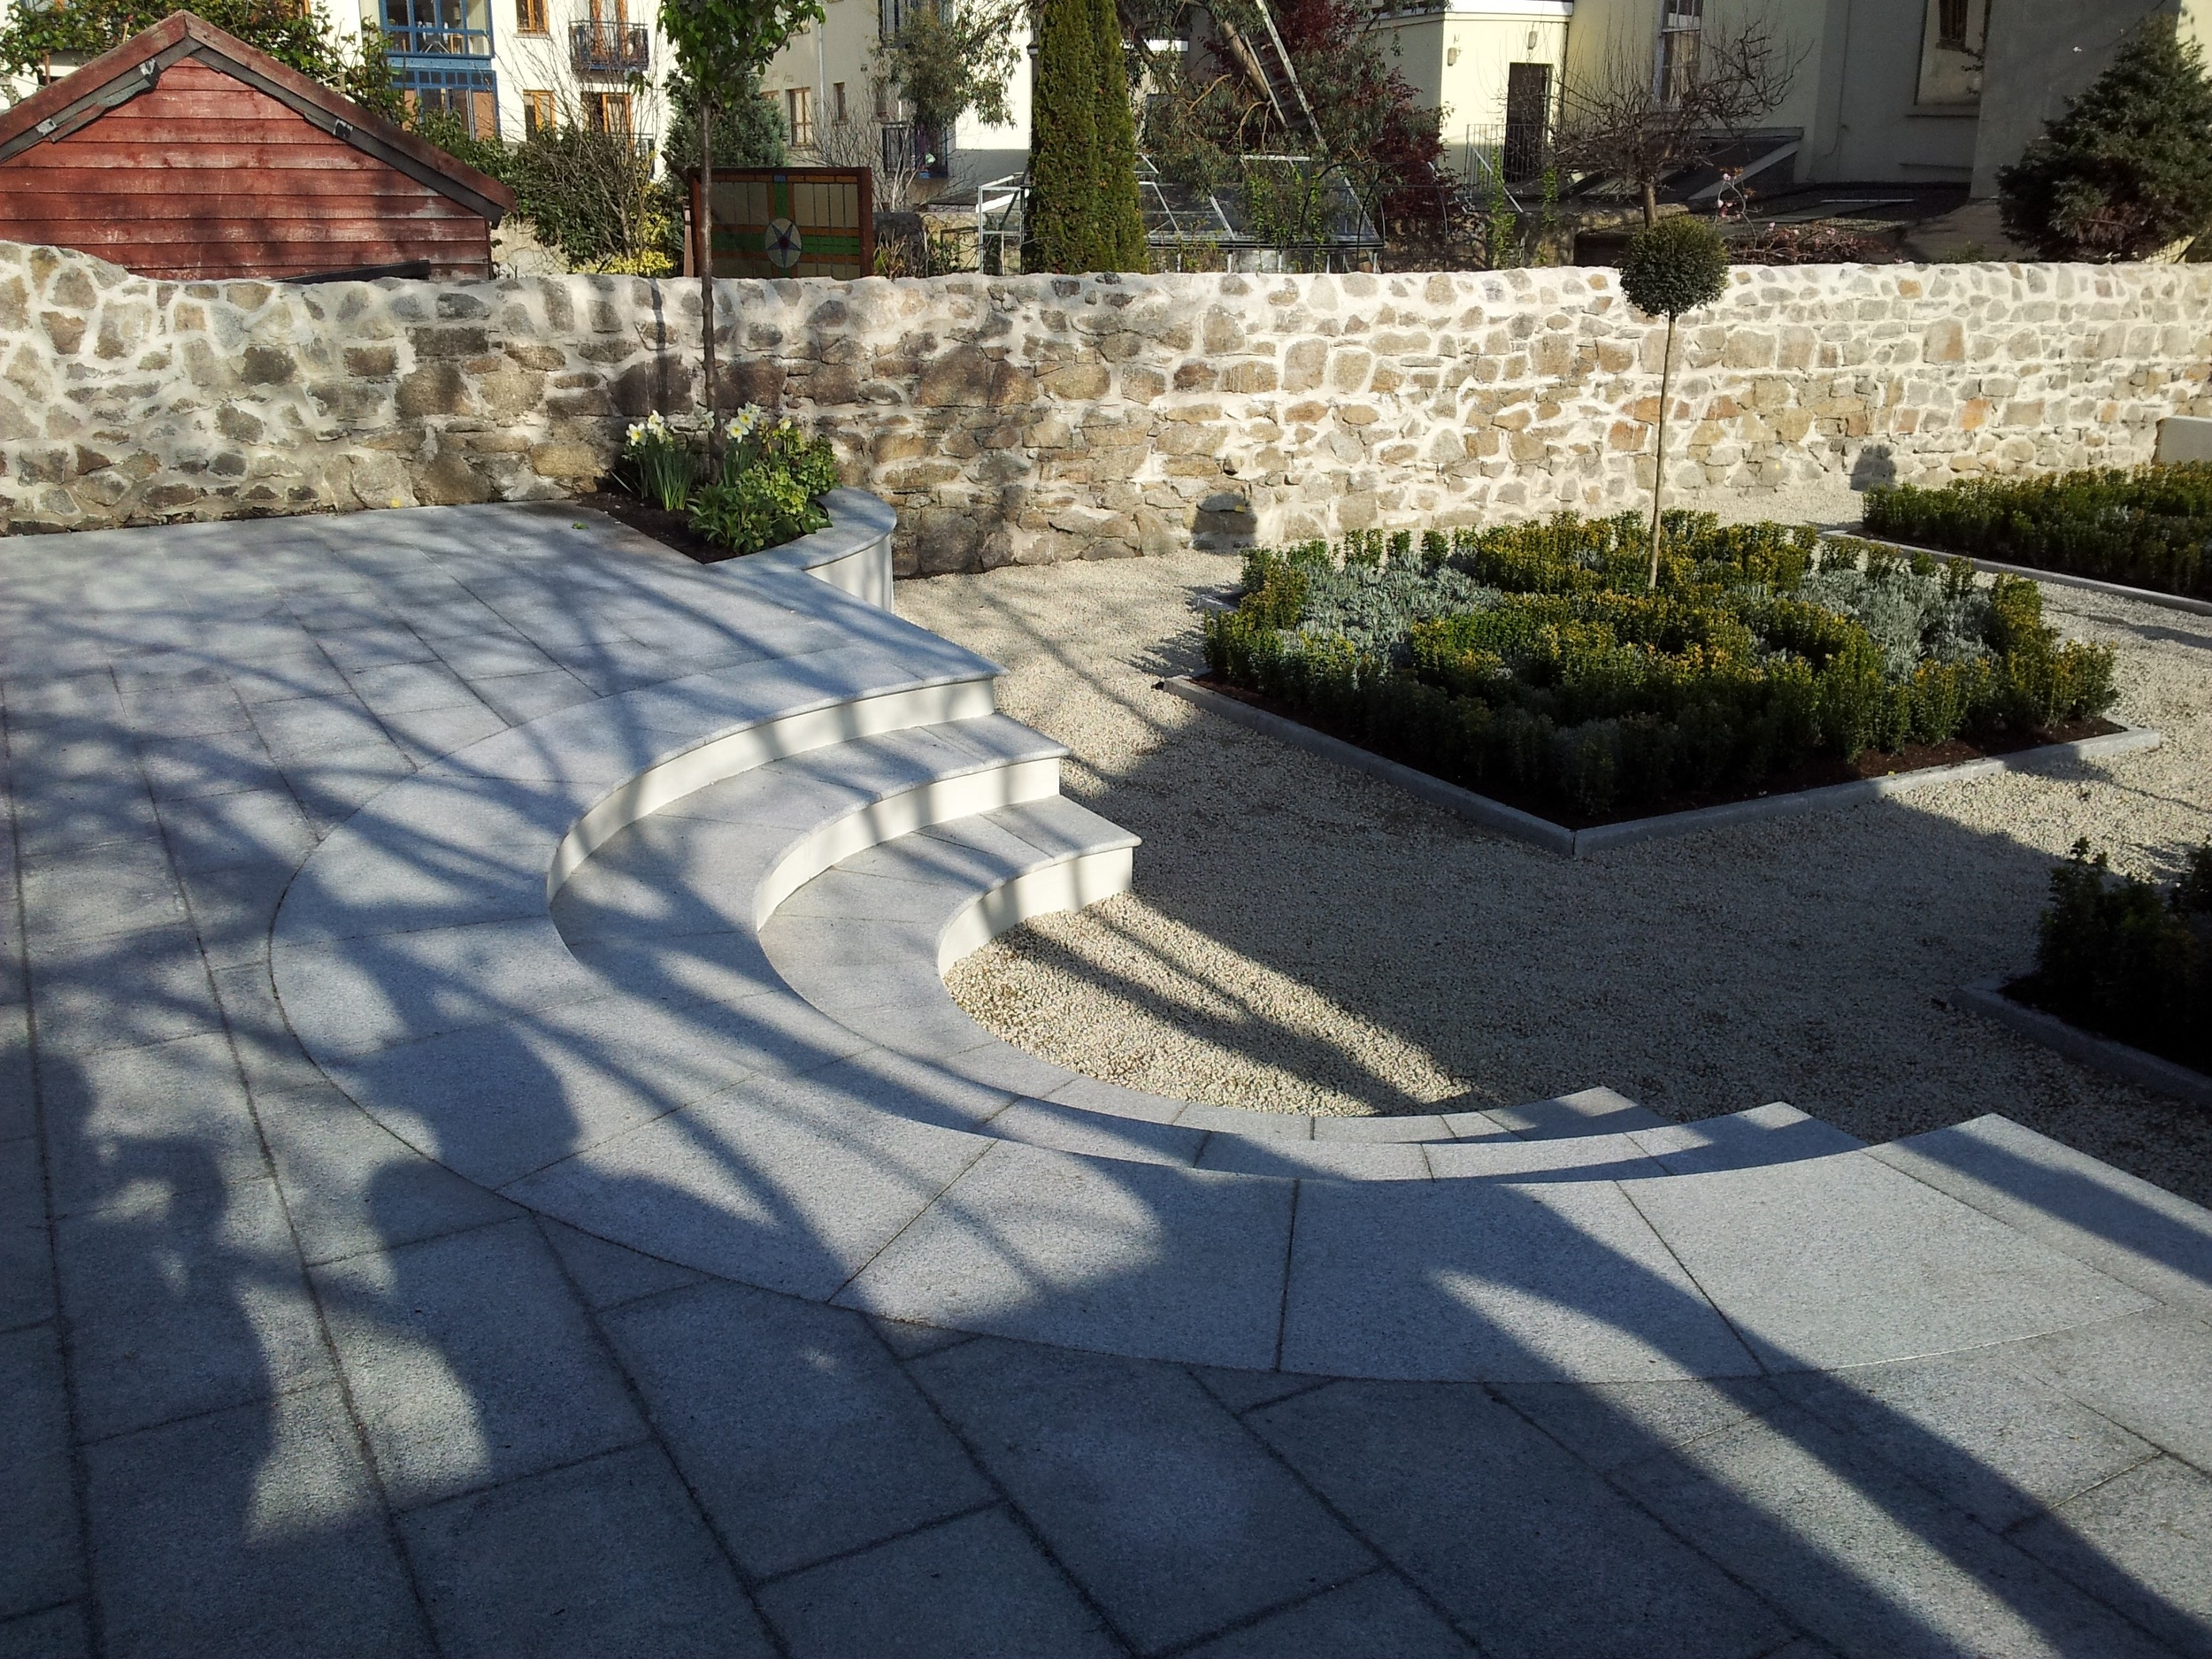 Curving steps to lower terrace